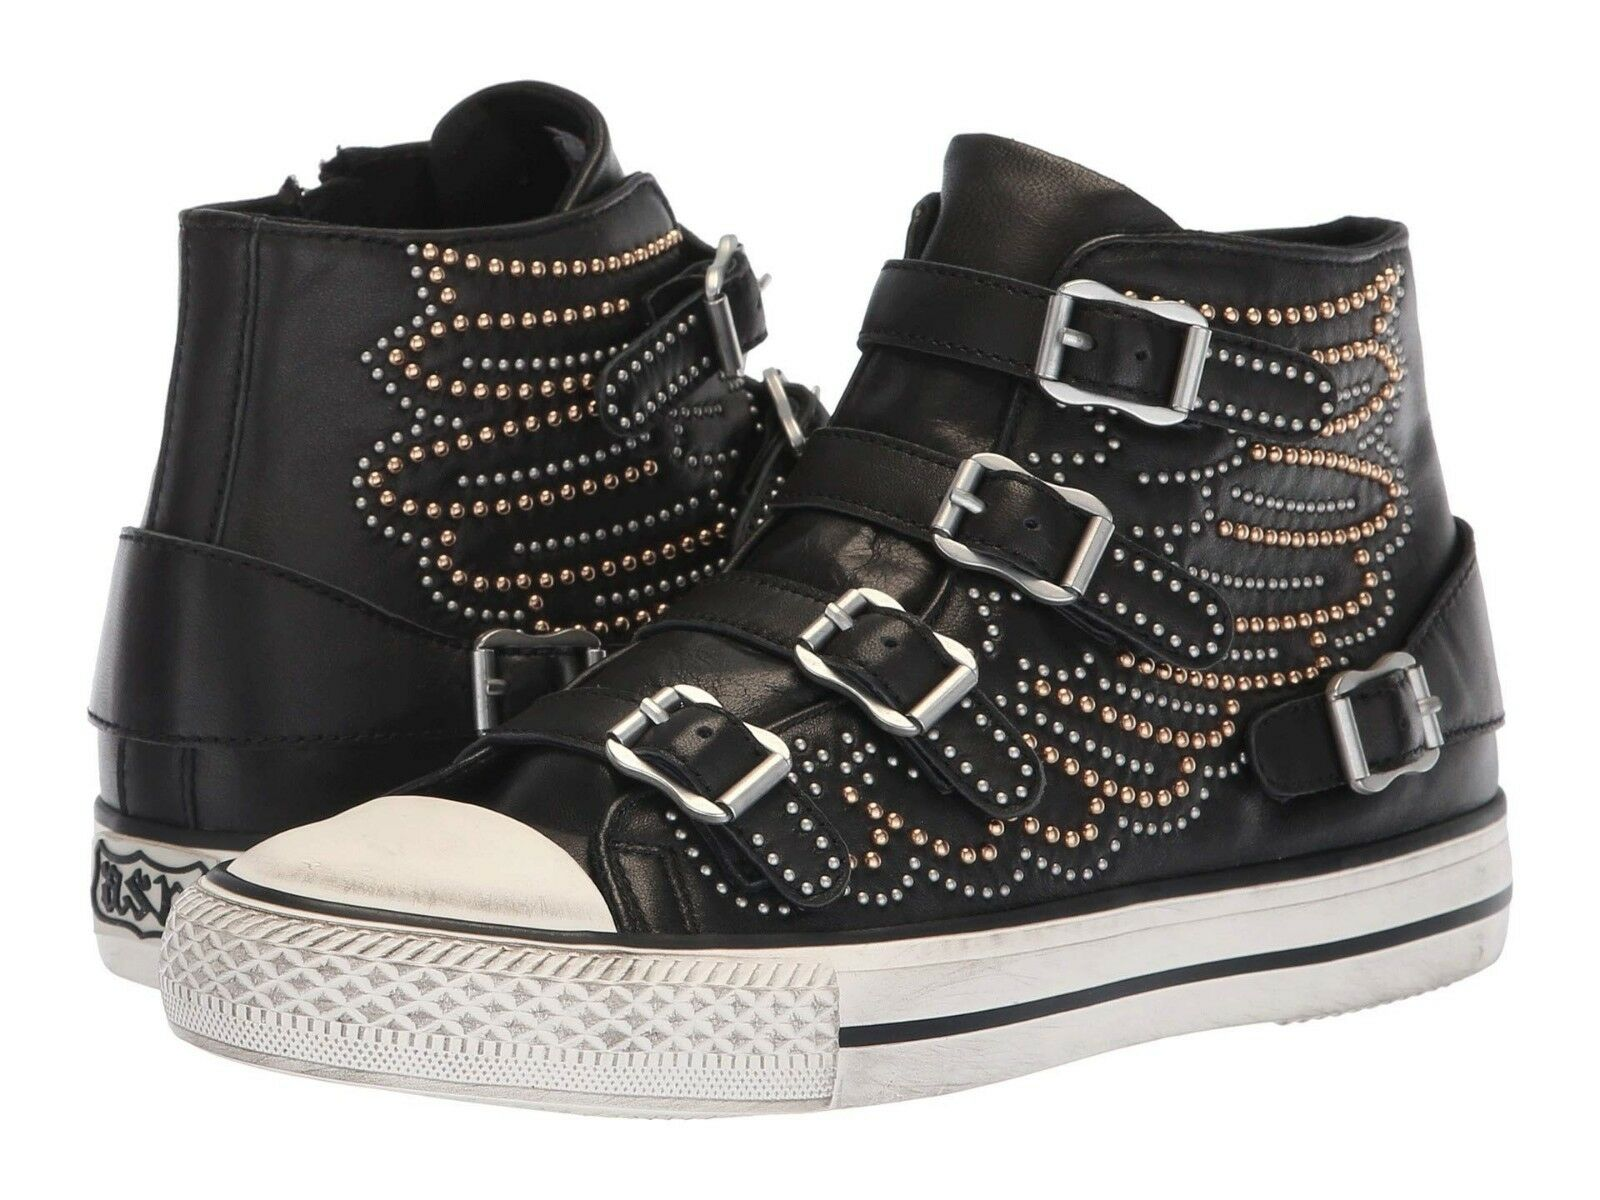 NEW ASH Brand Women's Fashion Verso Leather Biker Studded Wings Sneakers shoes